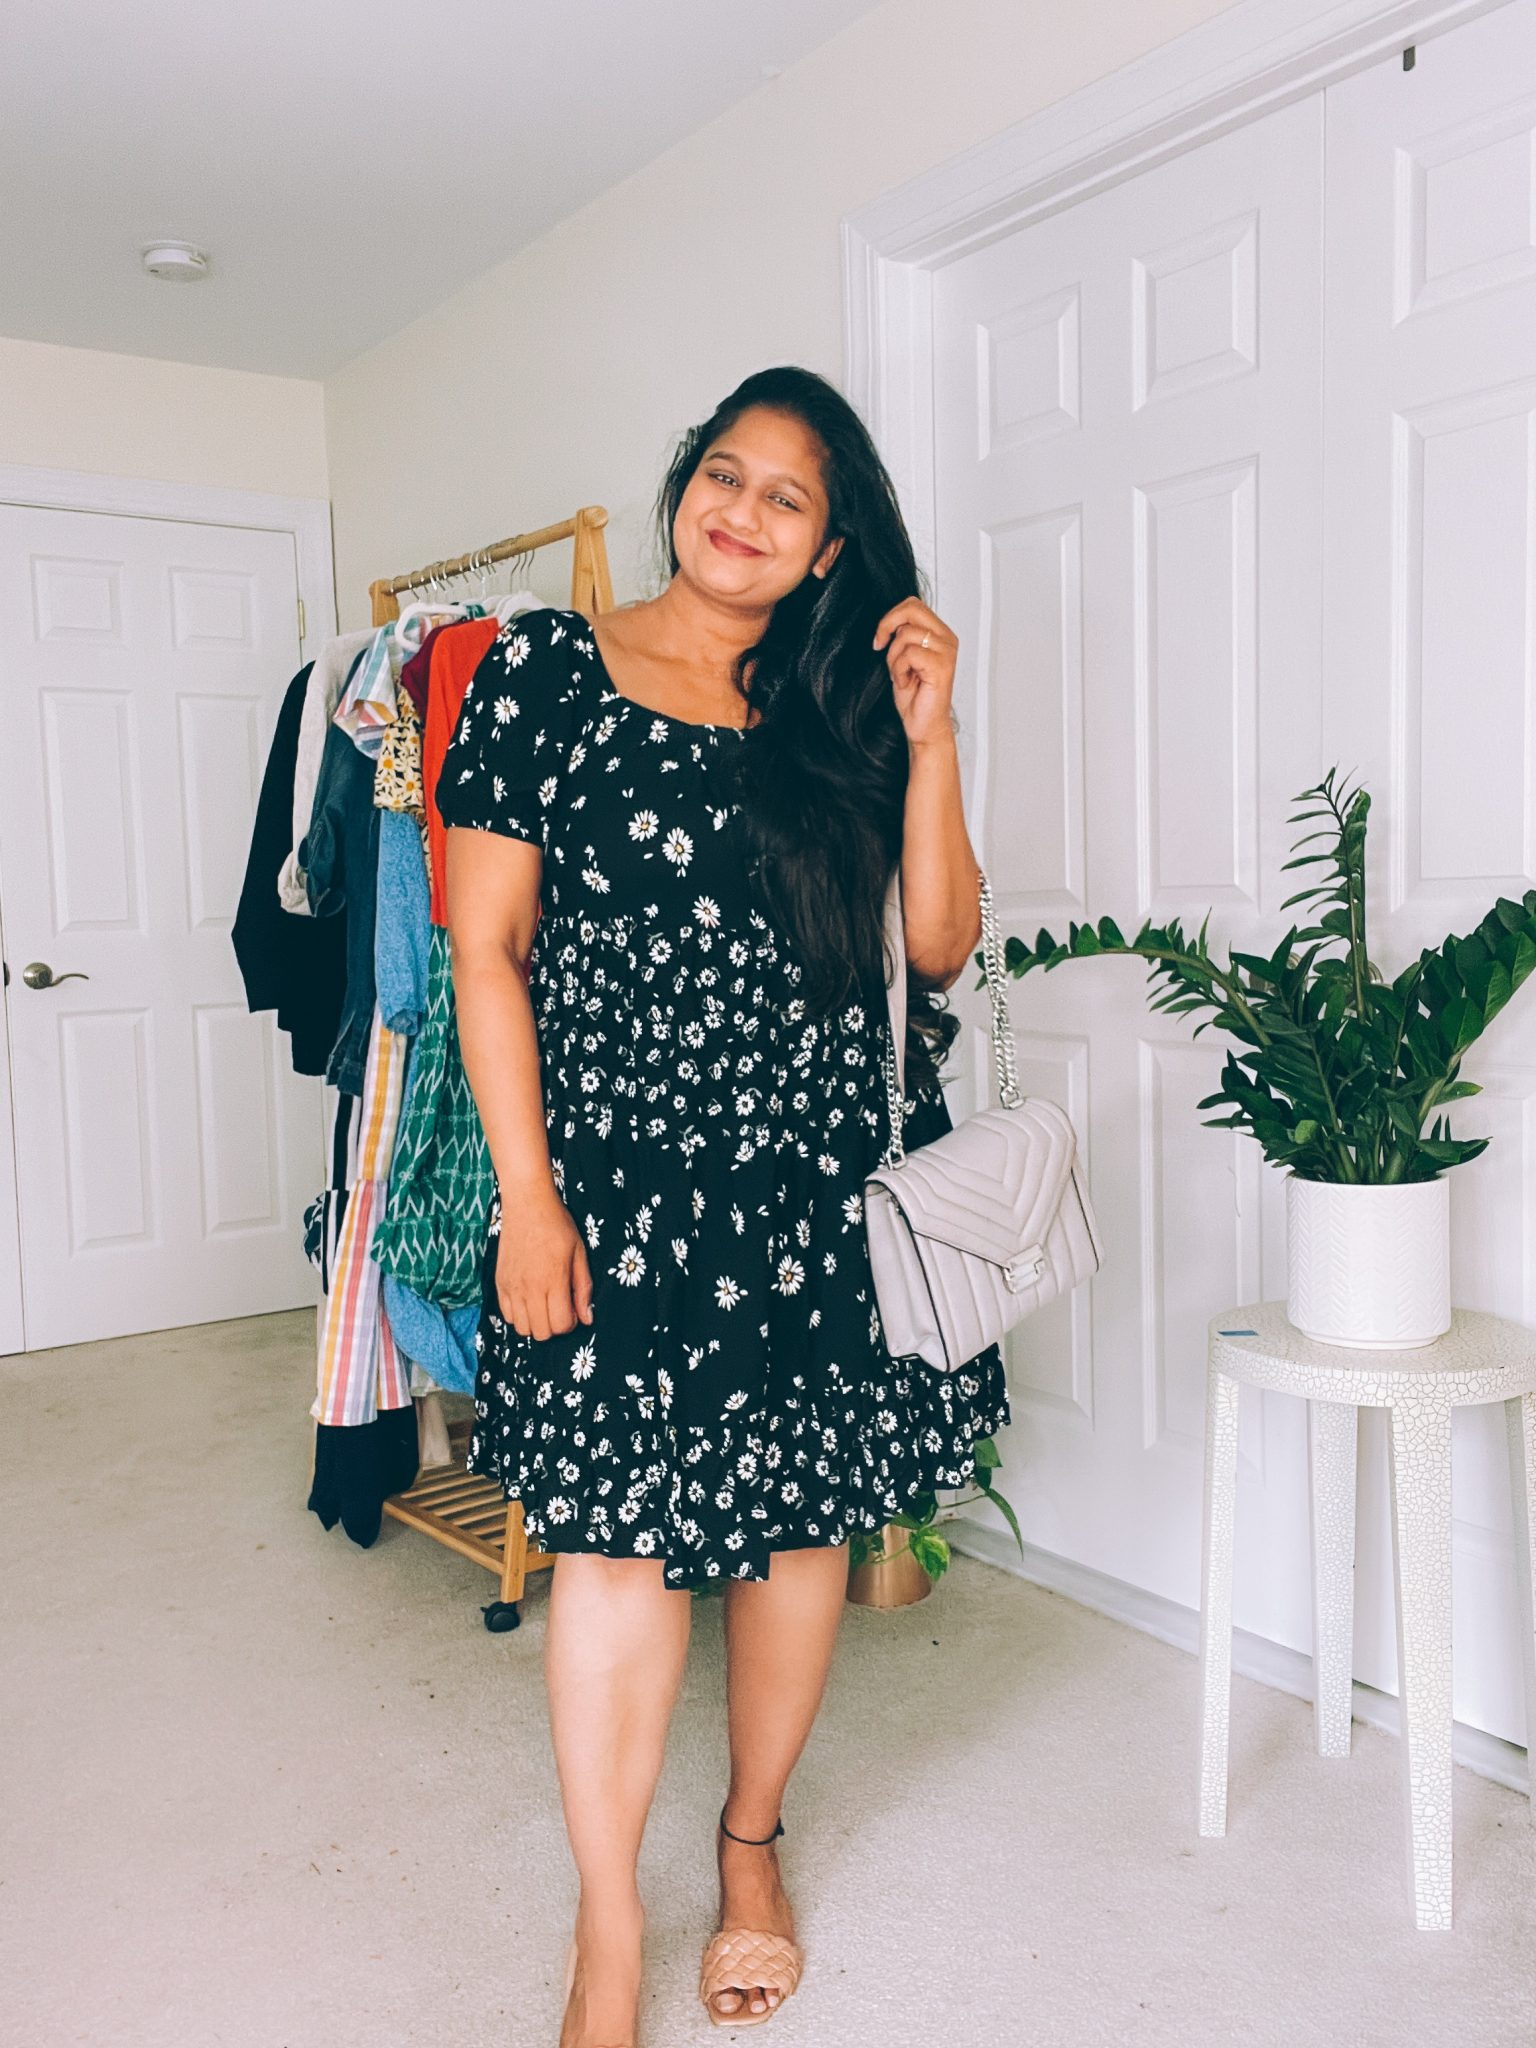 Wearing Maurices BLACK DAISY OFF THE SHOULDER BABYDOLL DRESS, Michael Kors hitney Quilted Leather Shoulder Bag by top US modest fashion blogger dreaming loud | Babydoll Dress by popular Maryland fashion blog, Dreaming Loud: image of a woman wearing a black and white daisy print Maurice's babydoll dress, tan braided strap sandals, and holding a grey handbag.